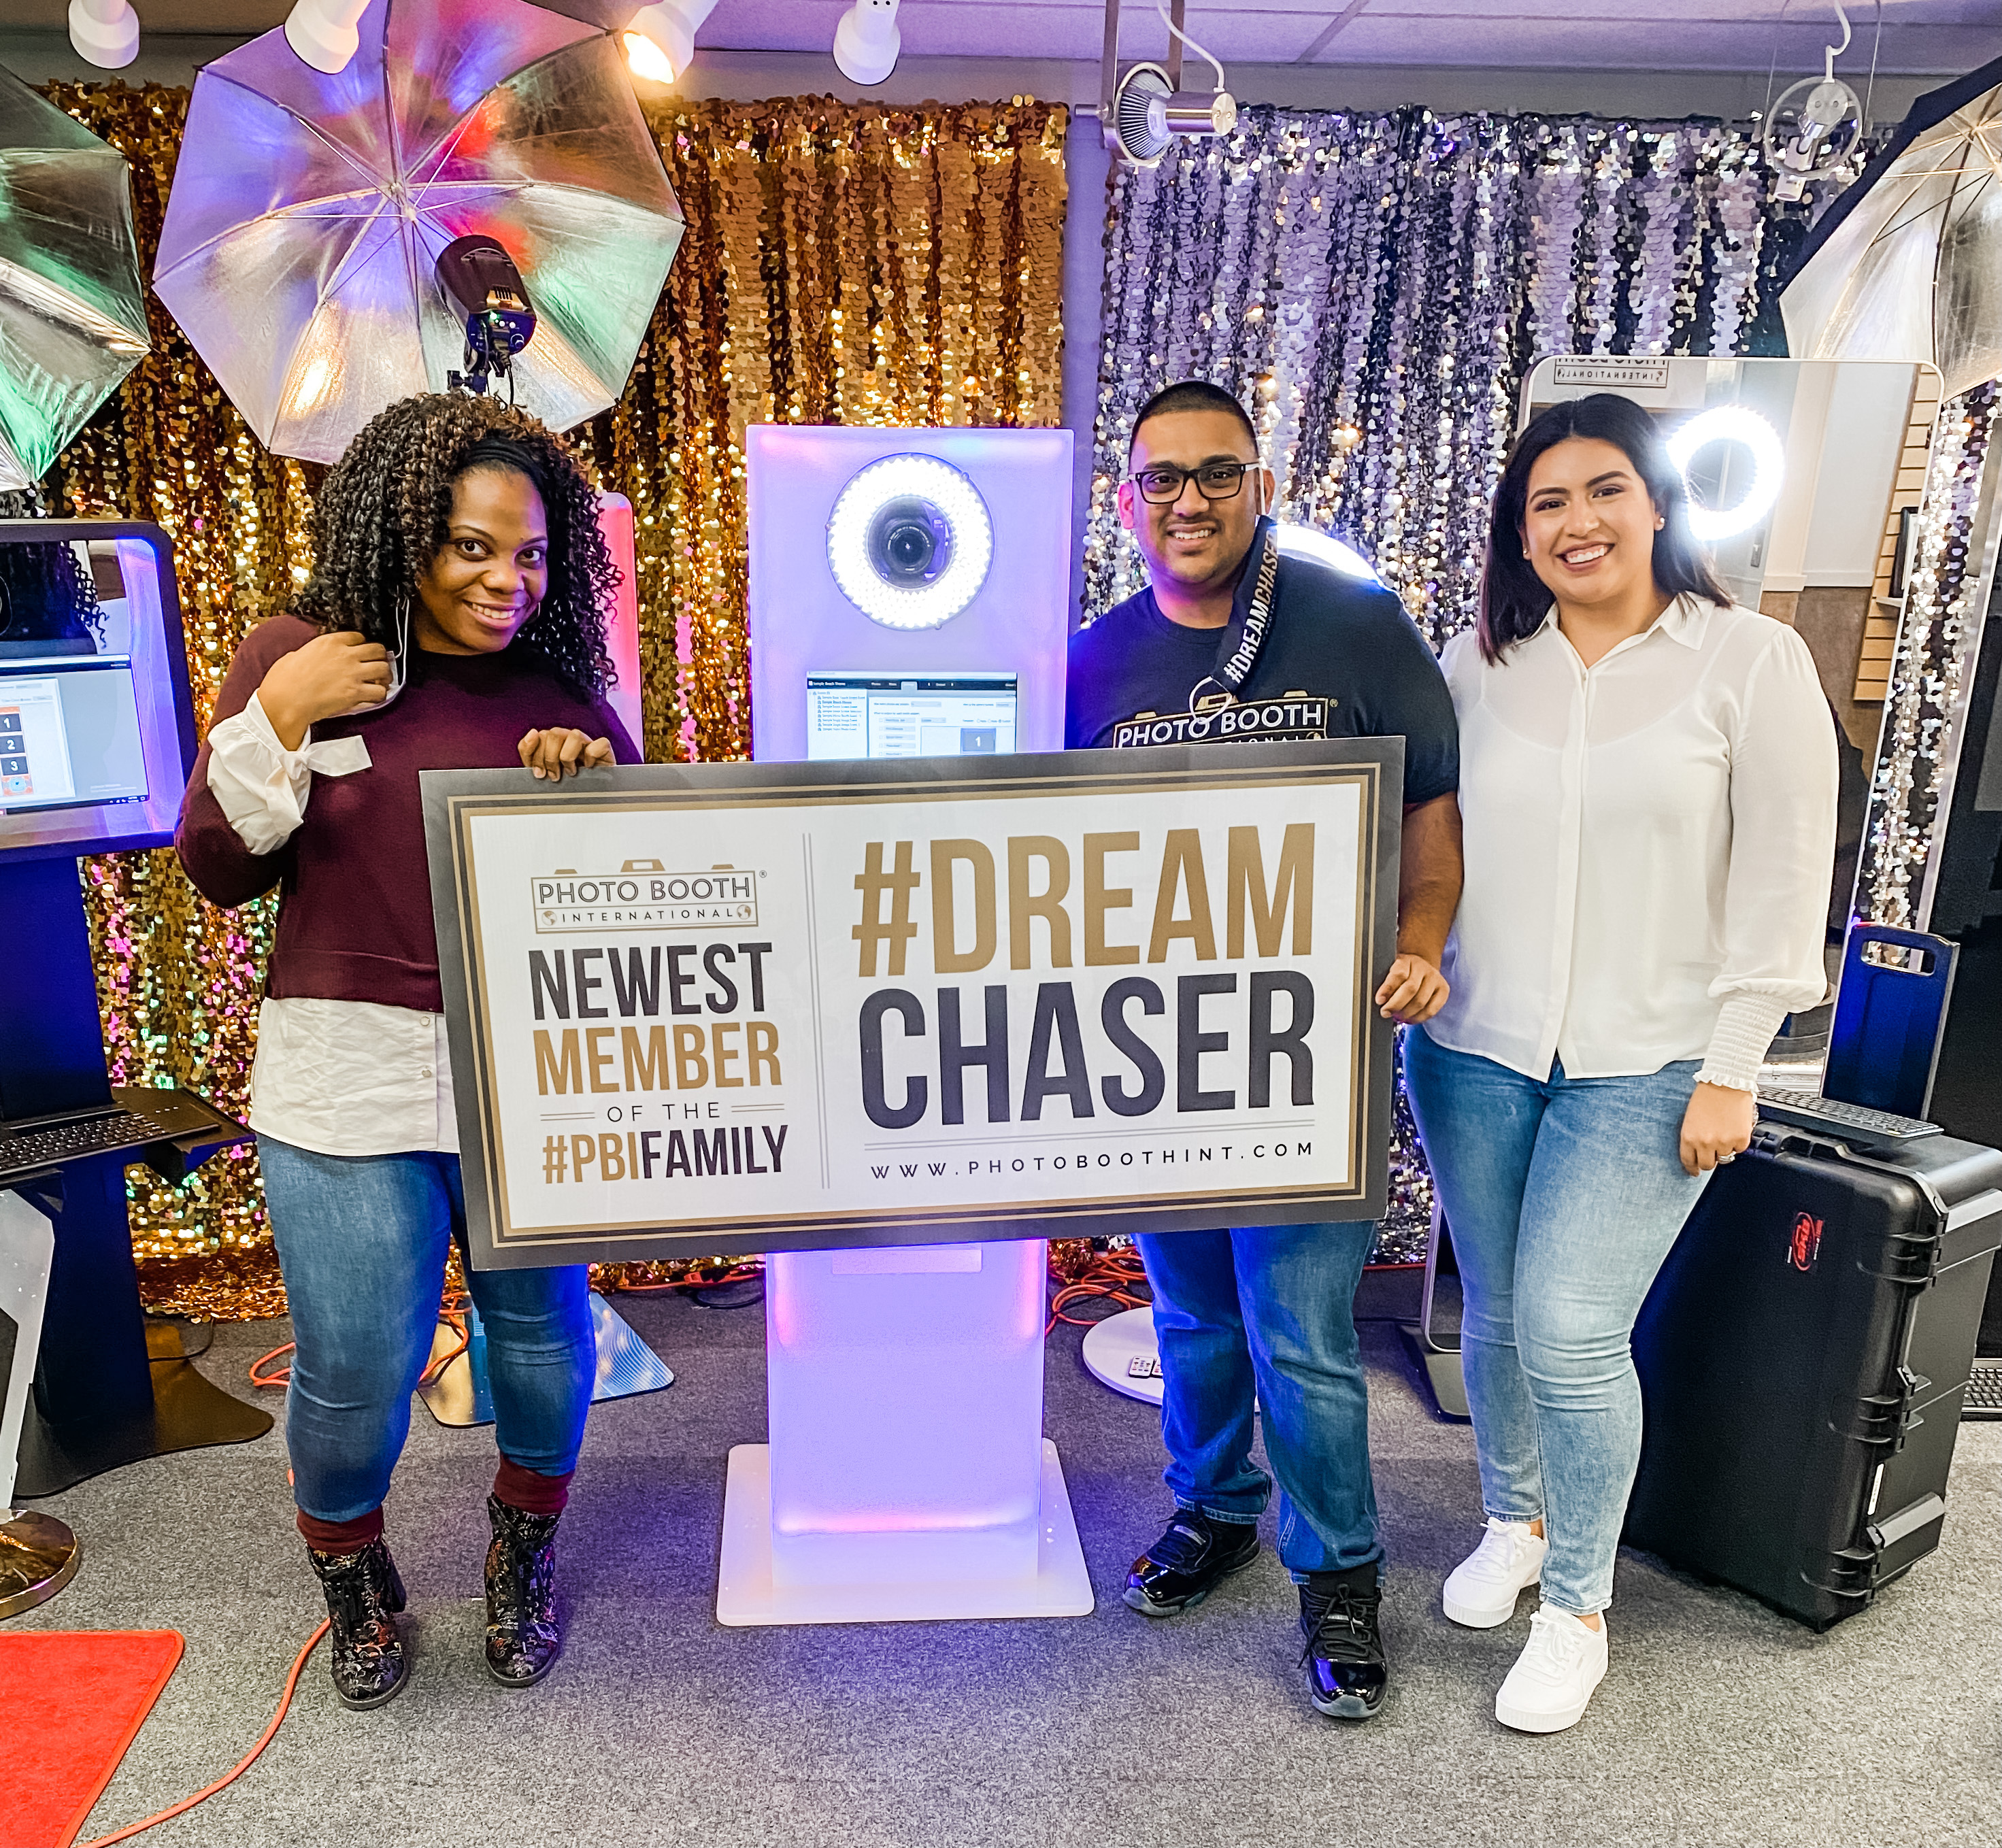 Photo Booth International Makes List of Fastest-Growing Companies in Texas